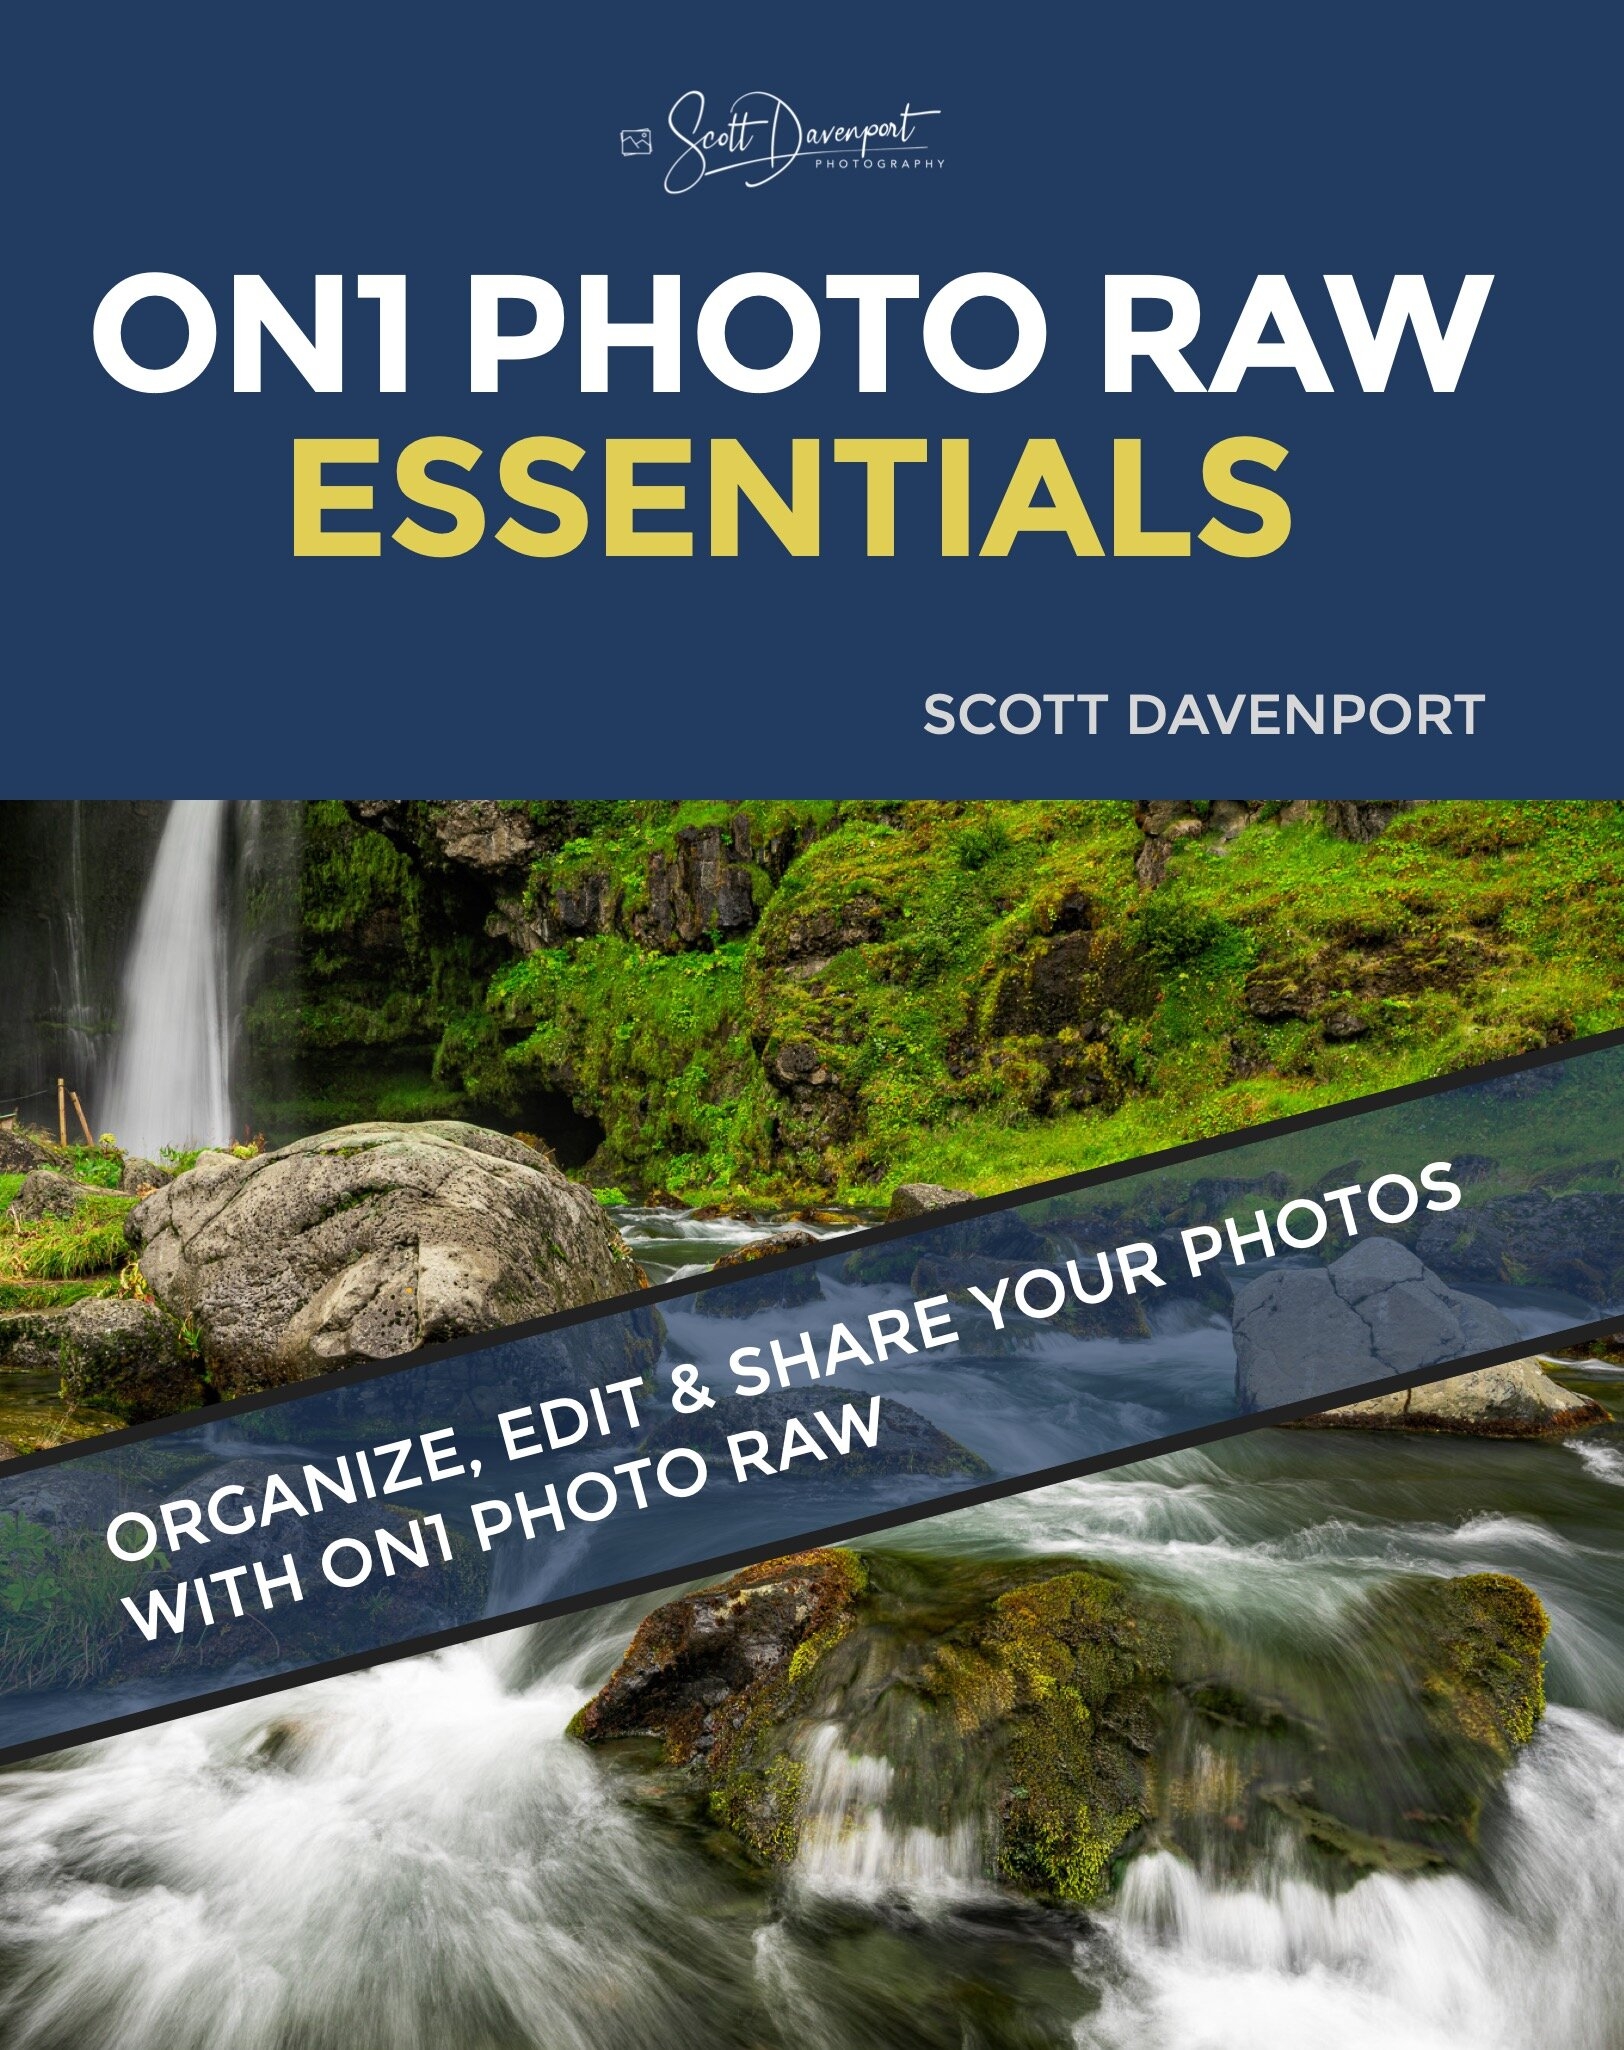 ON1 Photo RAW Essentials, 8th Edition, Cover Graphic.jpeg